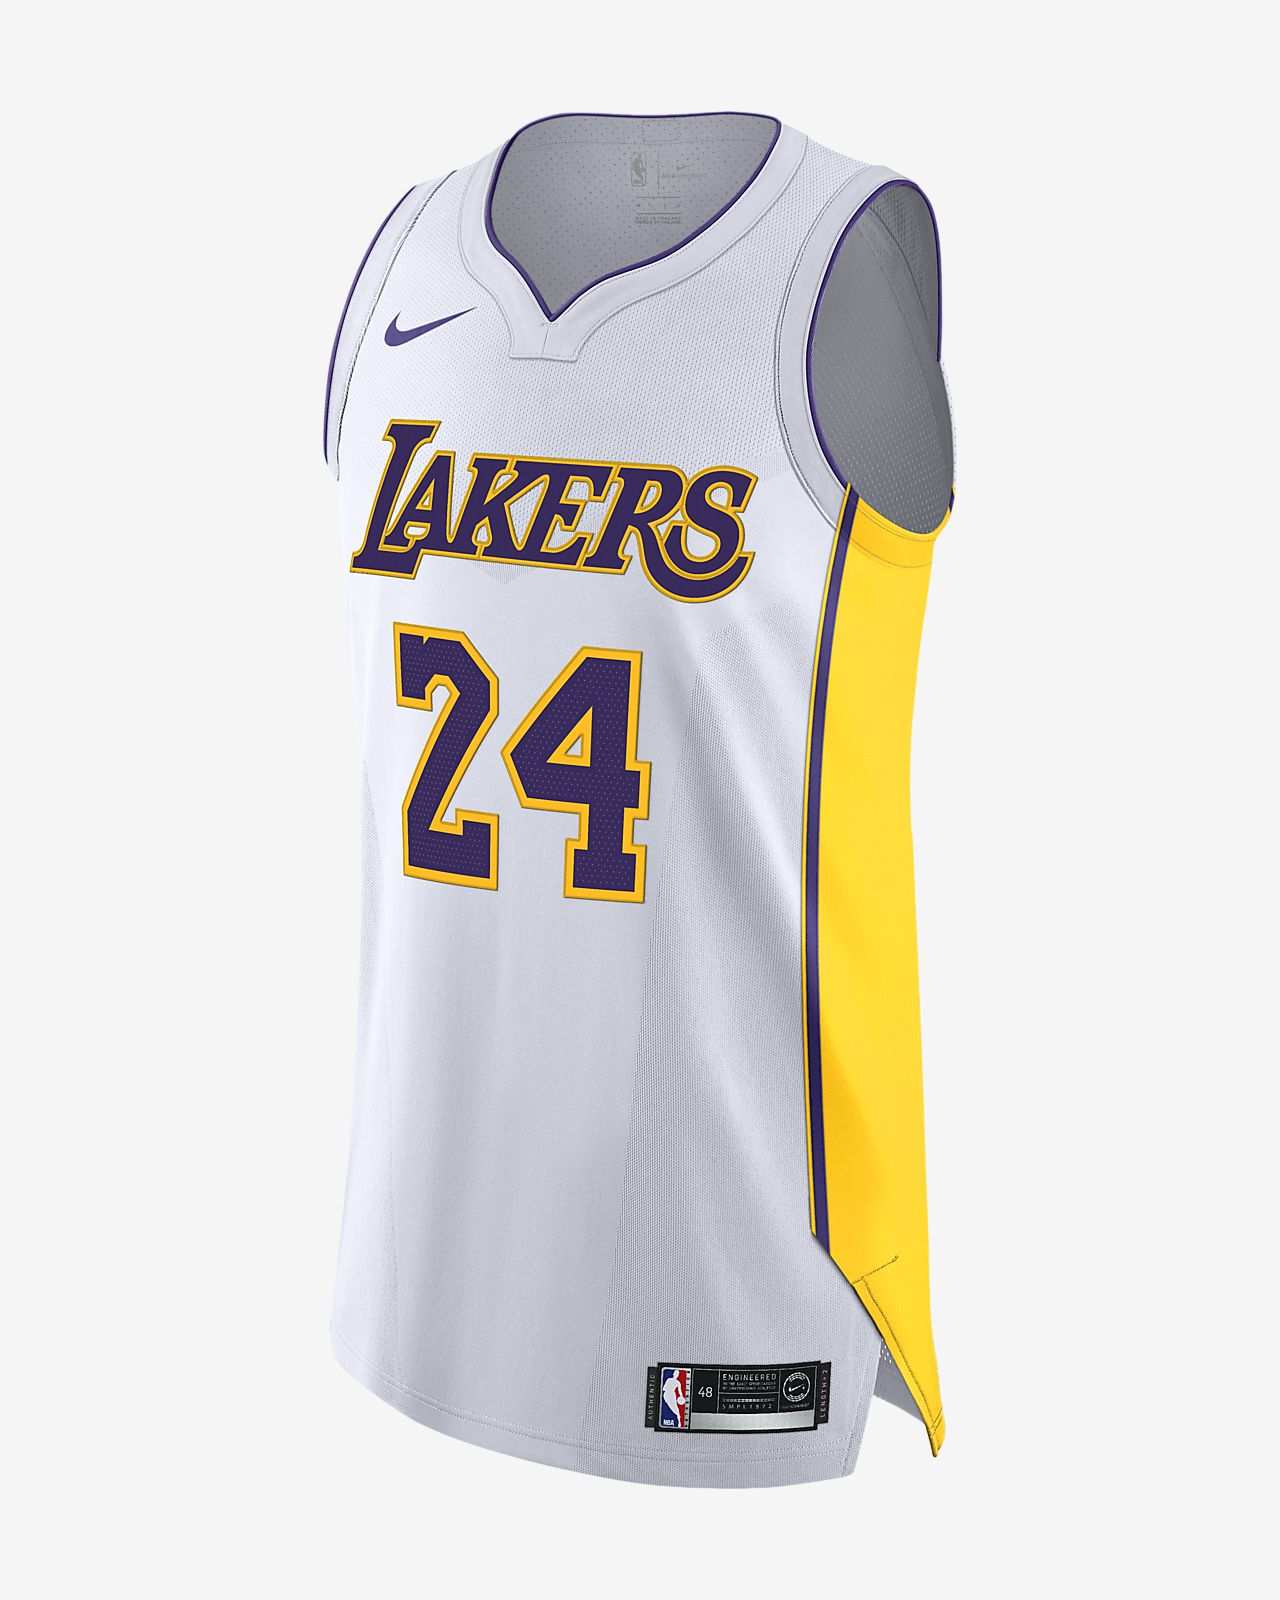 Kobe Bryant Association Edition Authentic (Los Angeles Lakers) Nike NBA  Connected férfimez 966e4d21c8